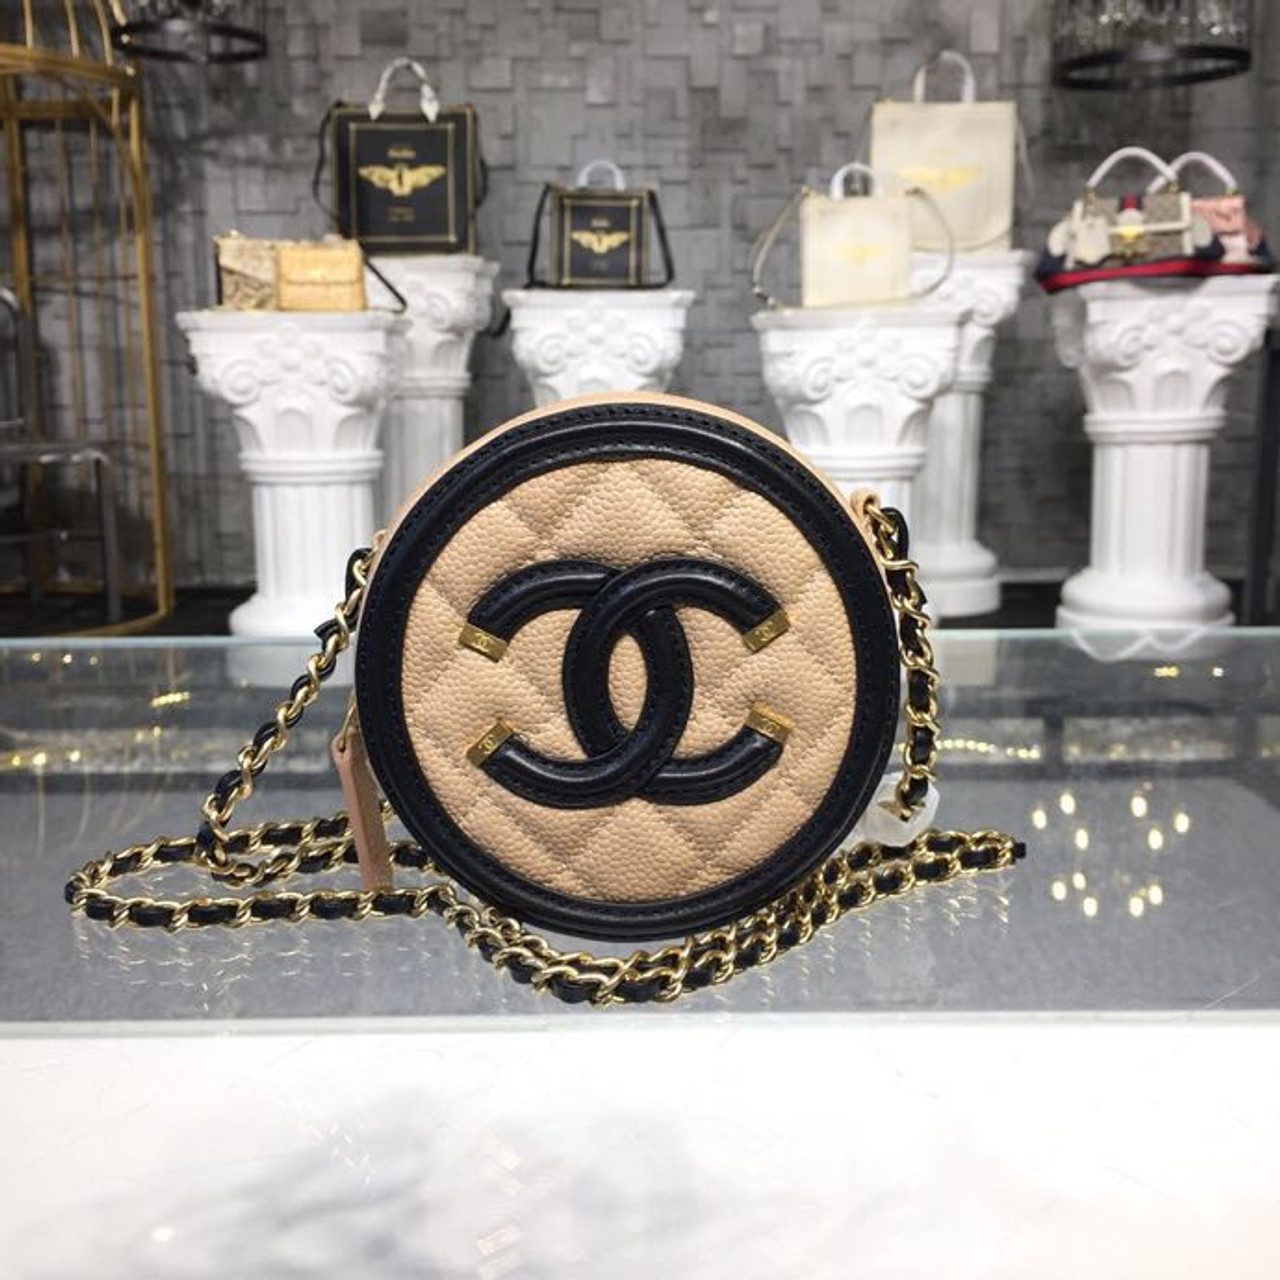 39ca023a871ec9 CC Filigree Grained Round Clutch with Chain Bag A81599 12cm Gold Hardware  Caviar Lambskin Leather Cruise